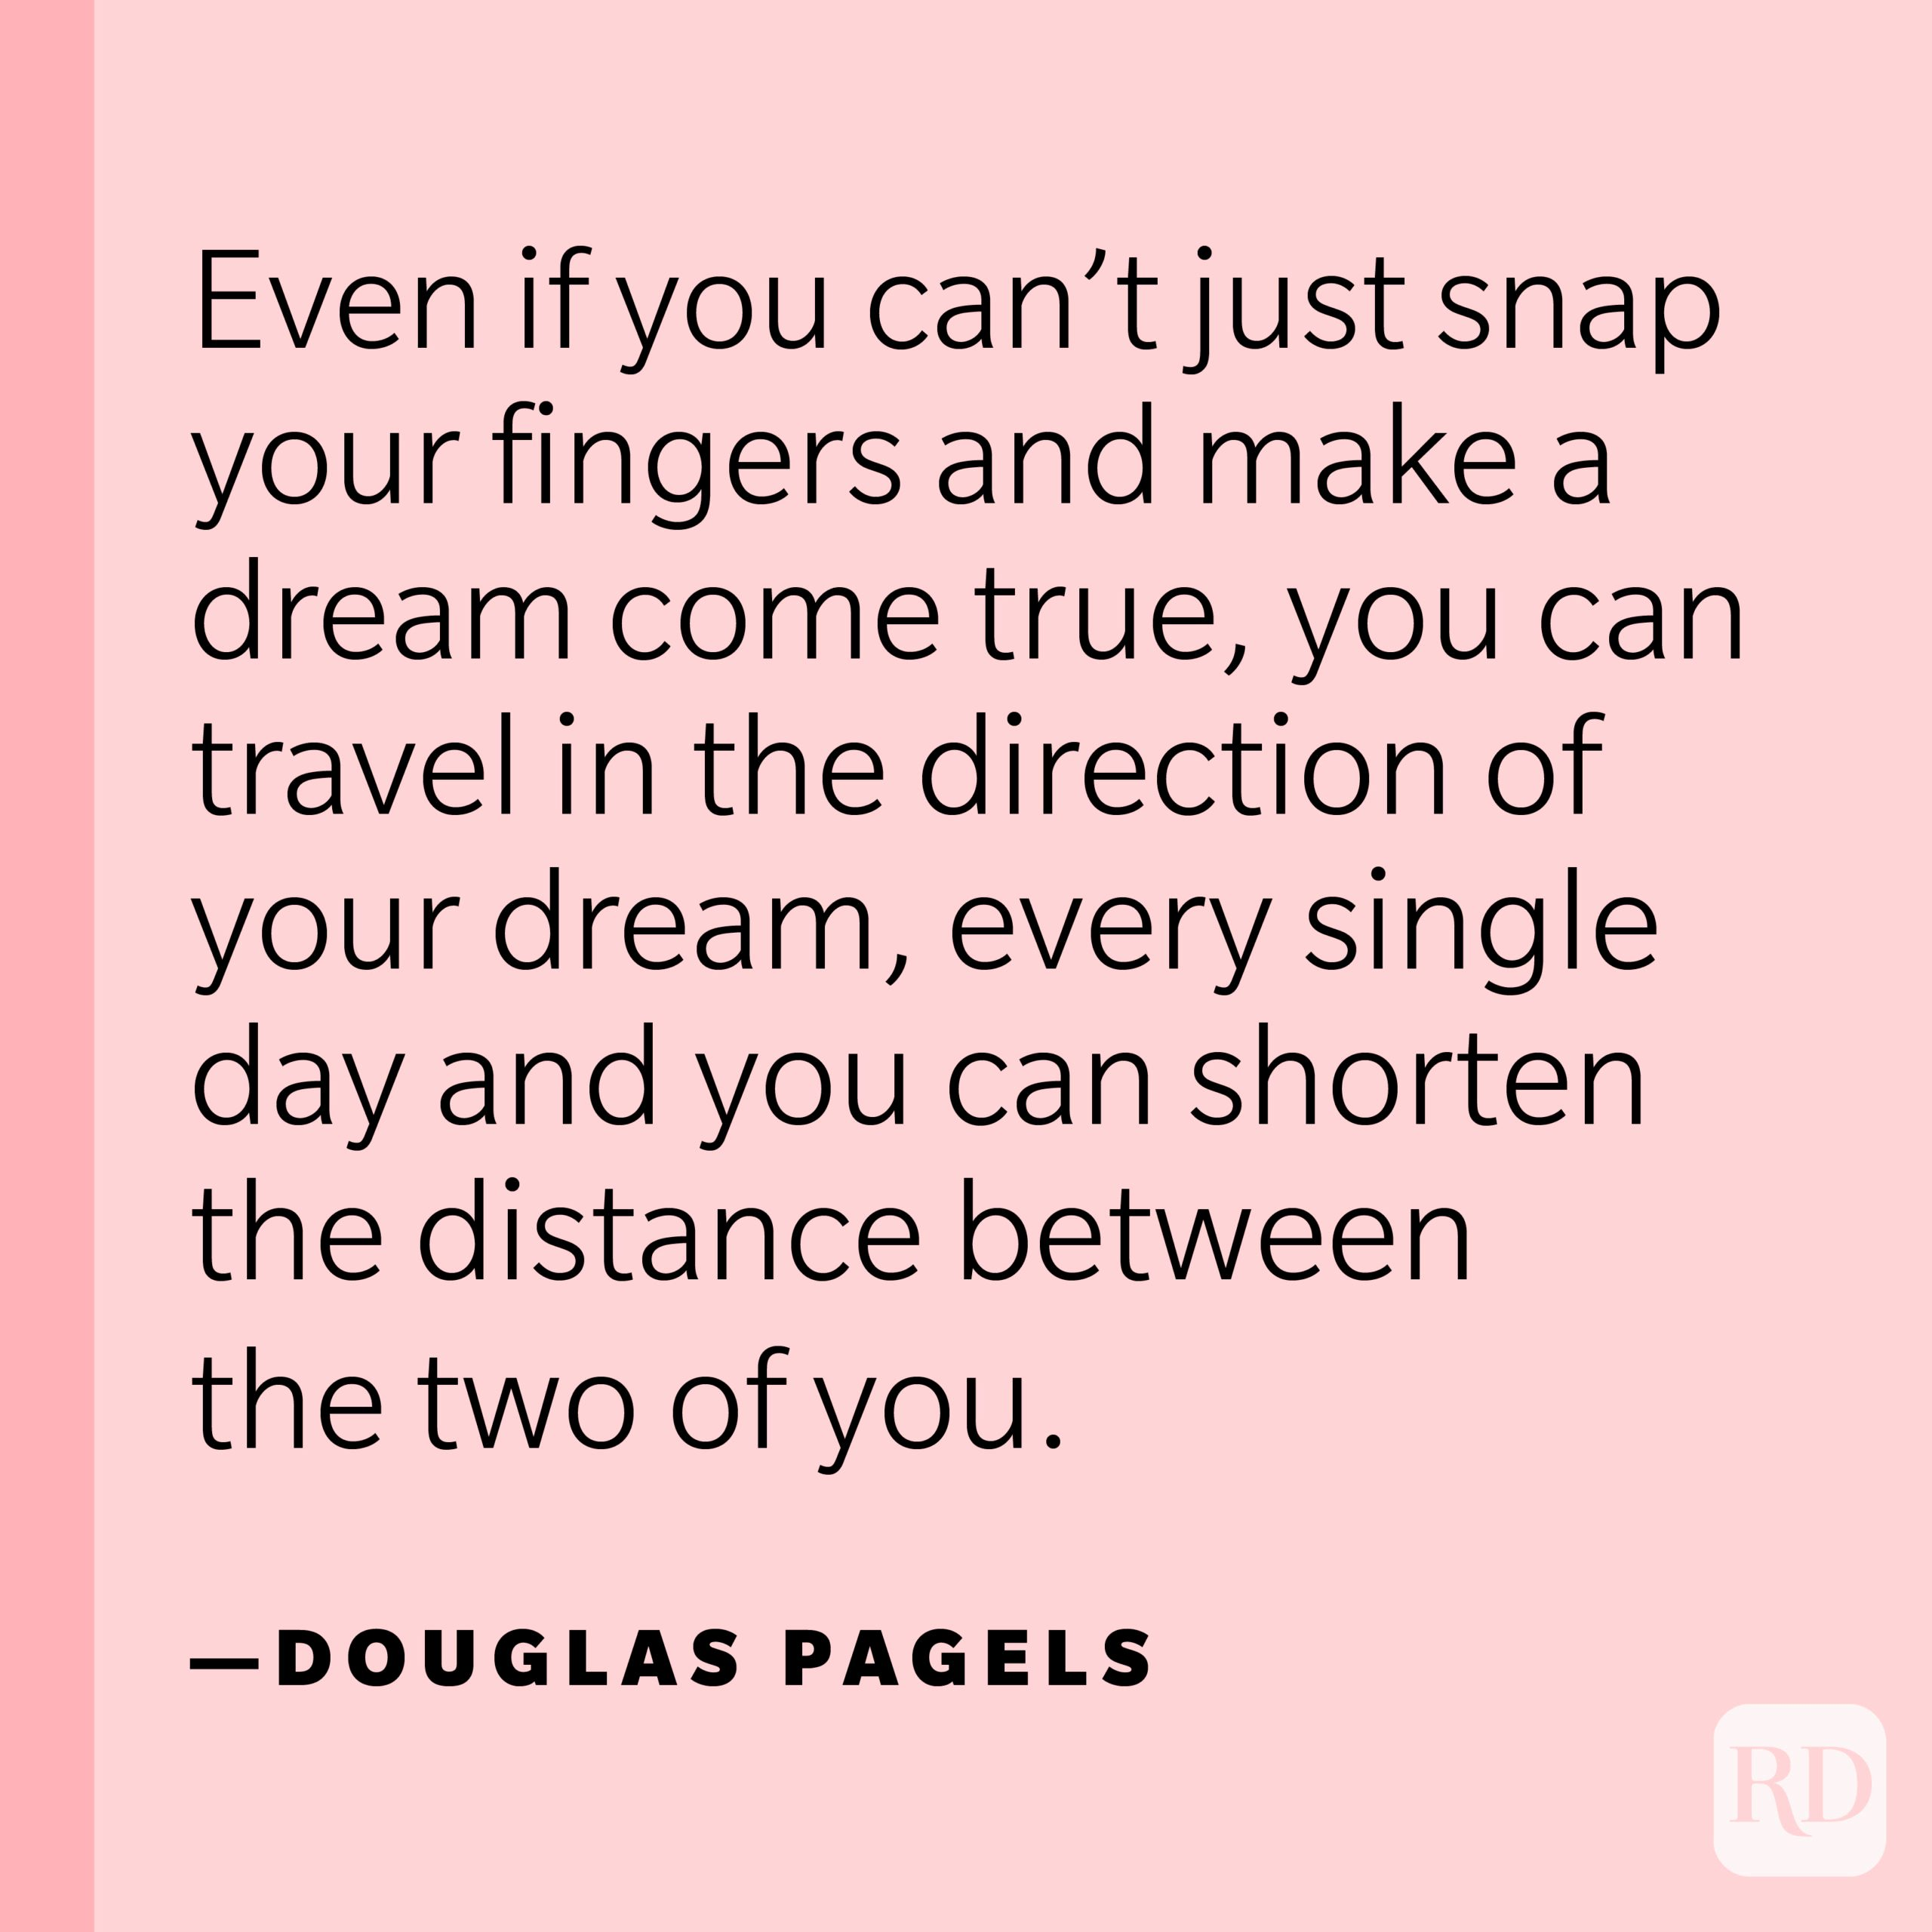 """""""Even if you can't just snap your fingers and make a dream come true, you can travel in the direction of your dream, every single day and you can shorten the distance between the two of you."""" —Douglas Pagels."""